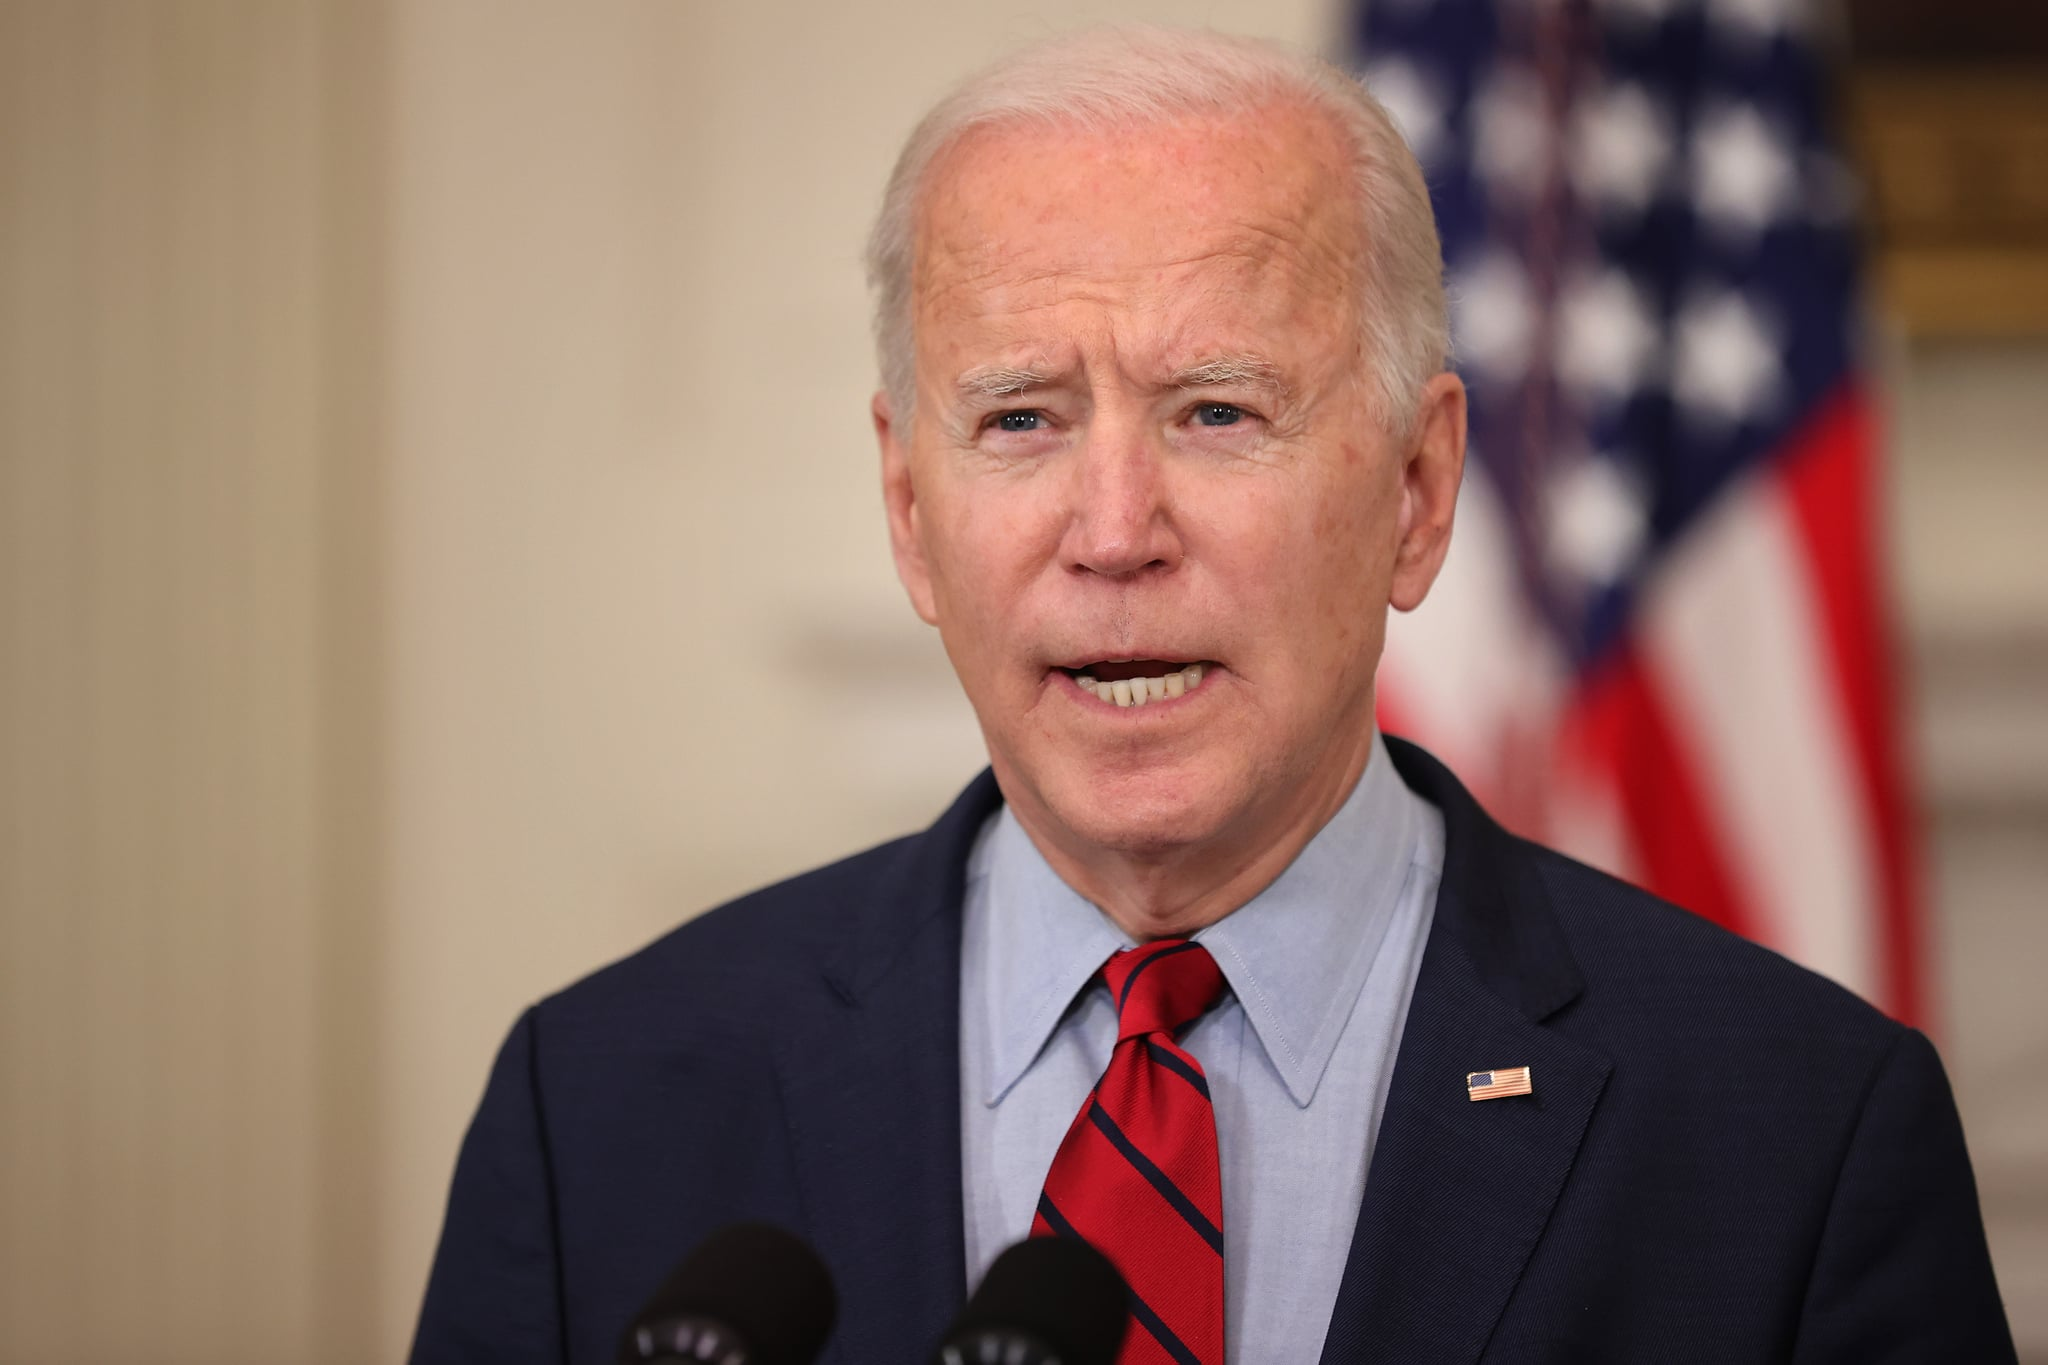 WASHINGTON, DC - MARCH 23: U.S. President Joe Biden delivers remarks about Monday's mass shooting in Boulder, Colorado, in the State Dining Room at the White House on March 23, 2021 in Washington, DC. Ten people were shot and killed at the King Soopers grocery store in Boulder and police have charged Ahmad Al Aliwi Alissa of Arvada, a suburb of Denver, with first-degree murder. This massacre comes less than a week after another mass shooting killed eight people — six of them women of Asian descent — at three spas in the Atlanta area.  (Photo by Chip Somodevilla/Getty Images)